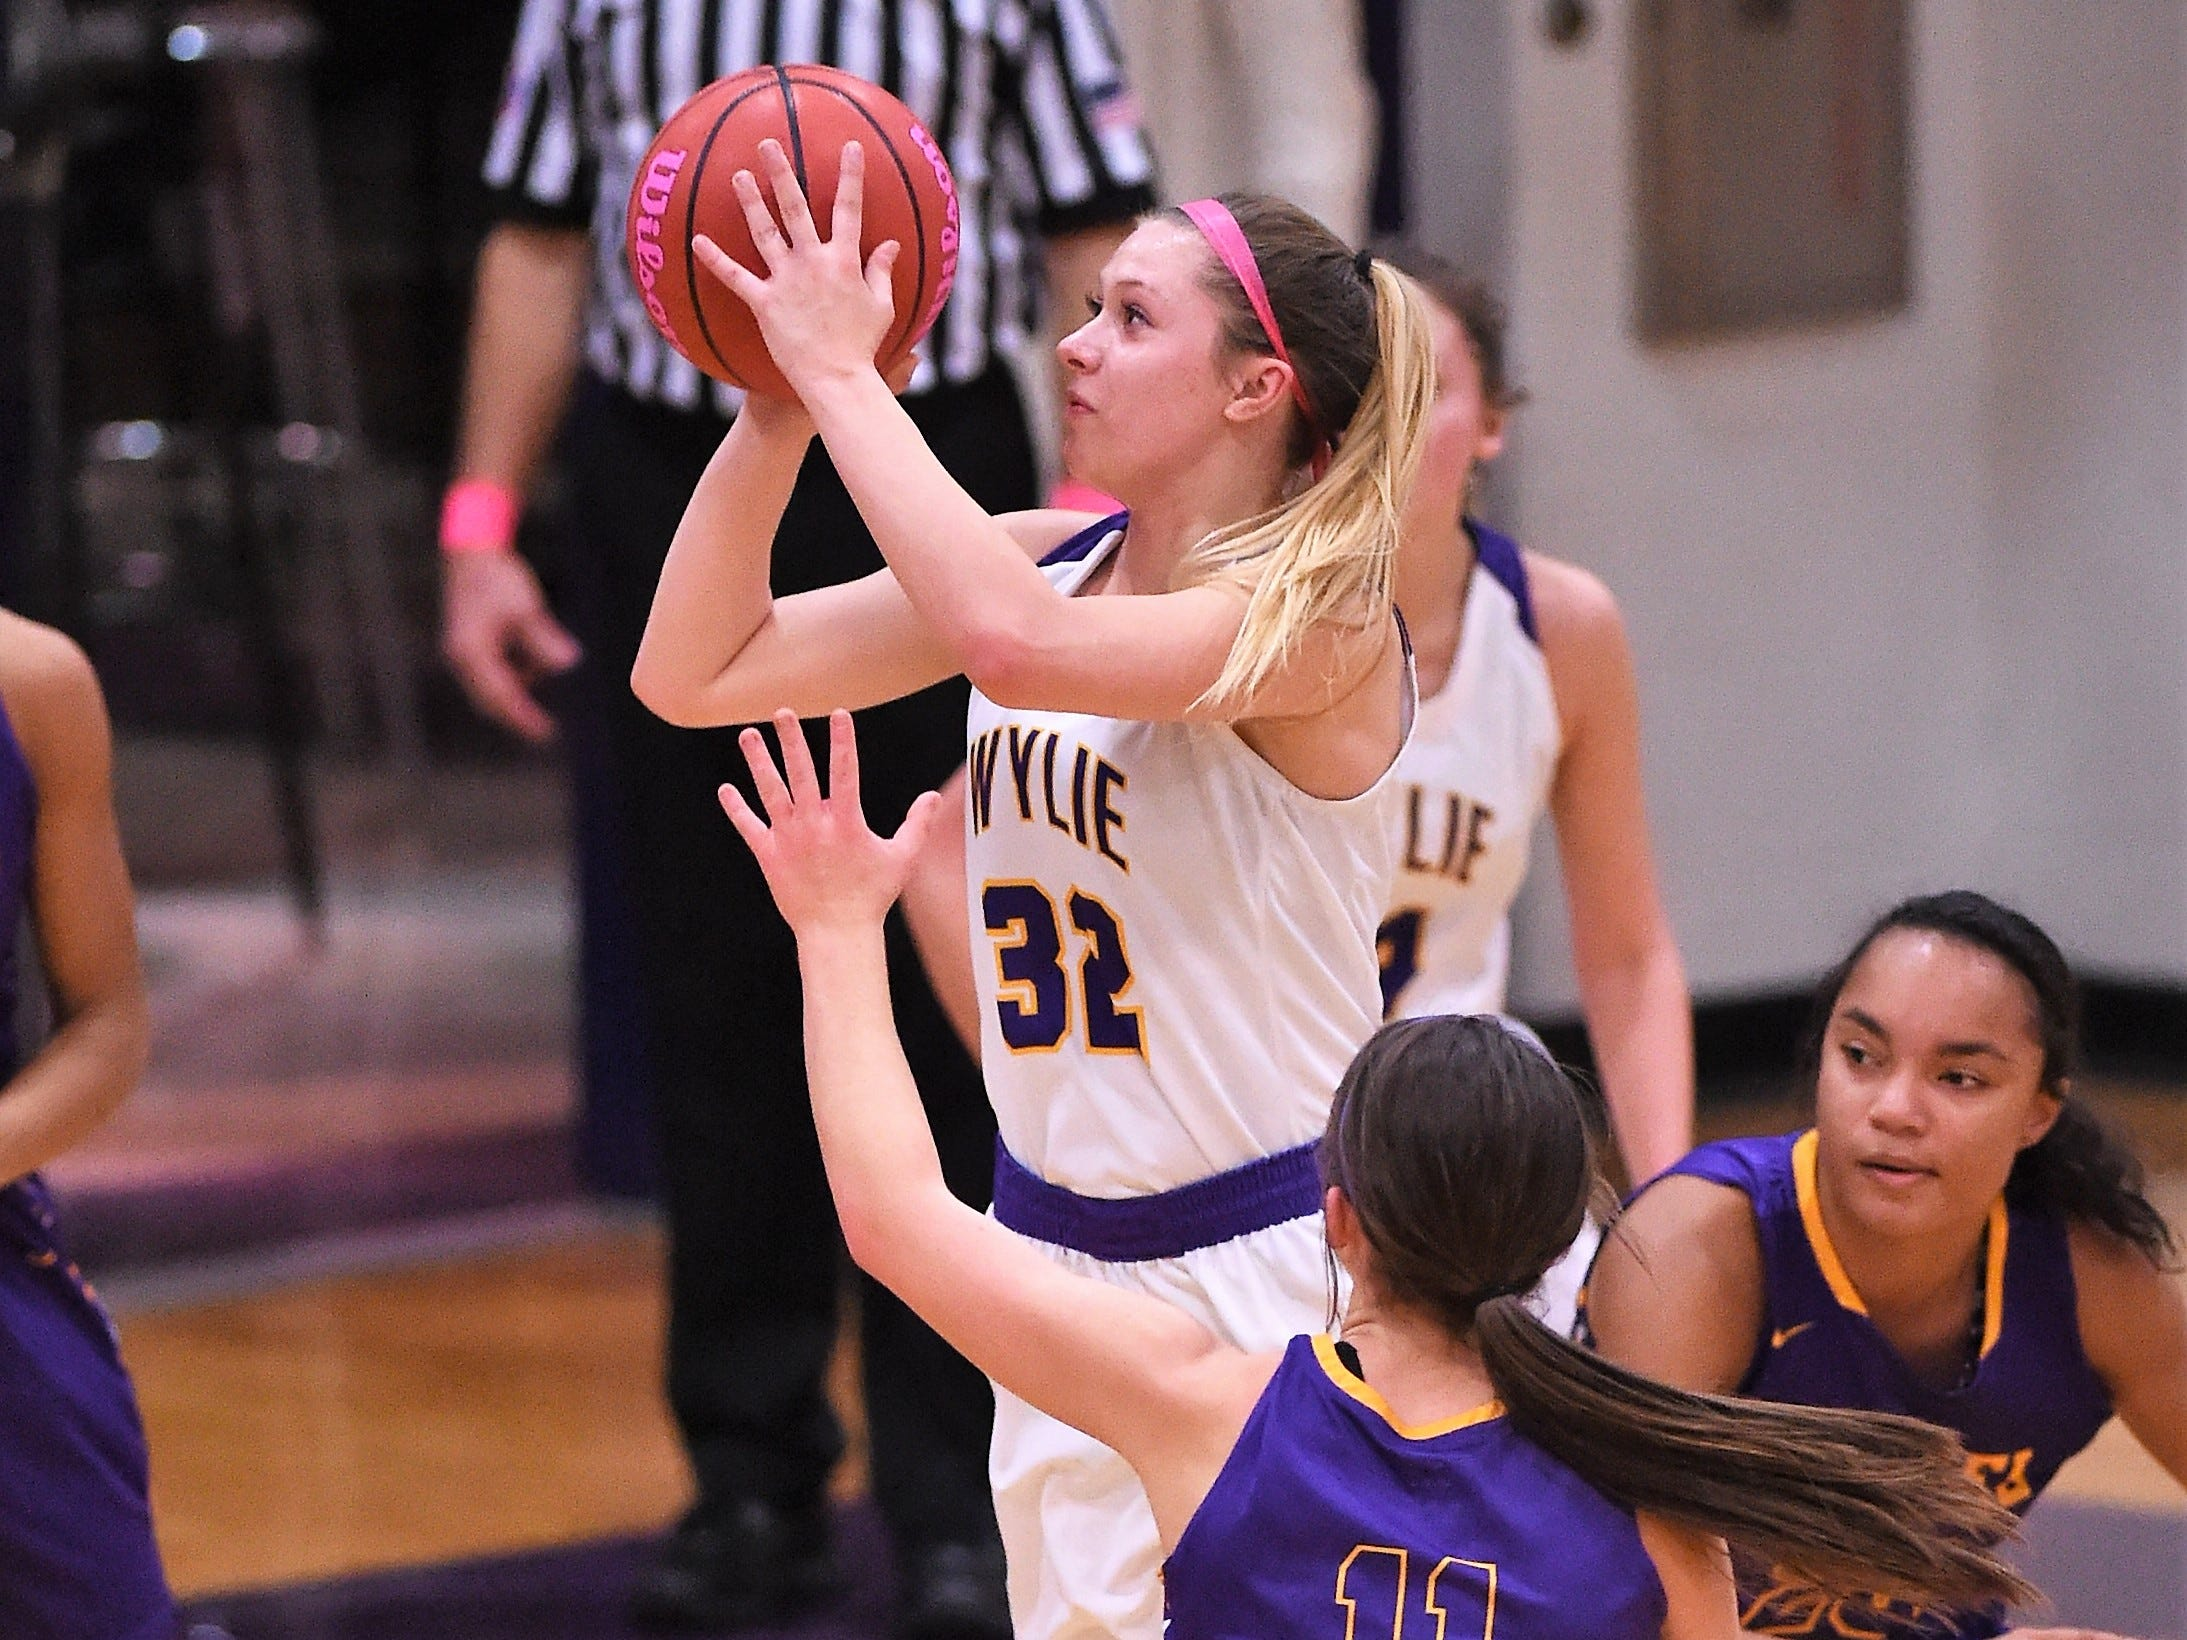 Wylie's Skylar Williams (32) takes a mid-range jumper against Merkel in the Coaches vs. Cancer Pink Out game on Tuesday, Dec. 4, 2018. The Lady Bulldogs won 75-39.